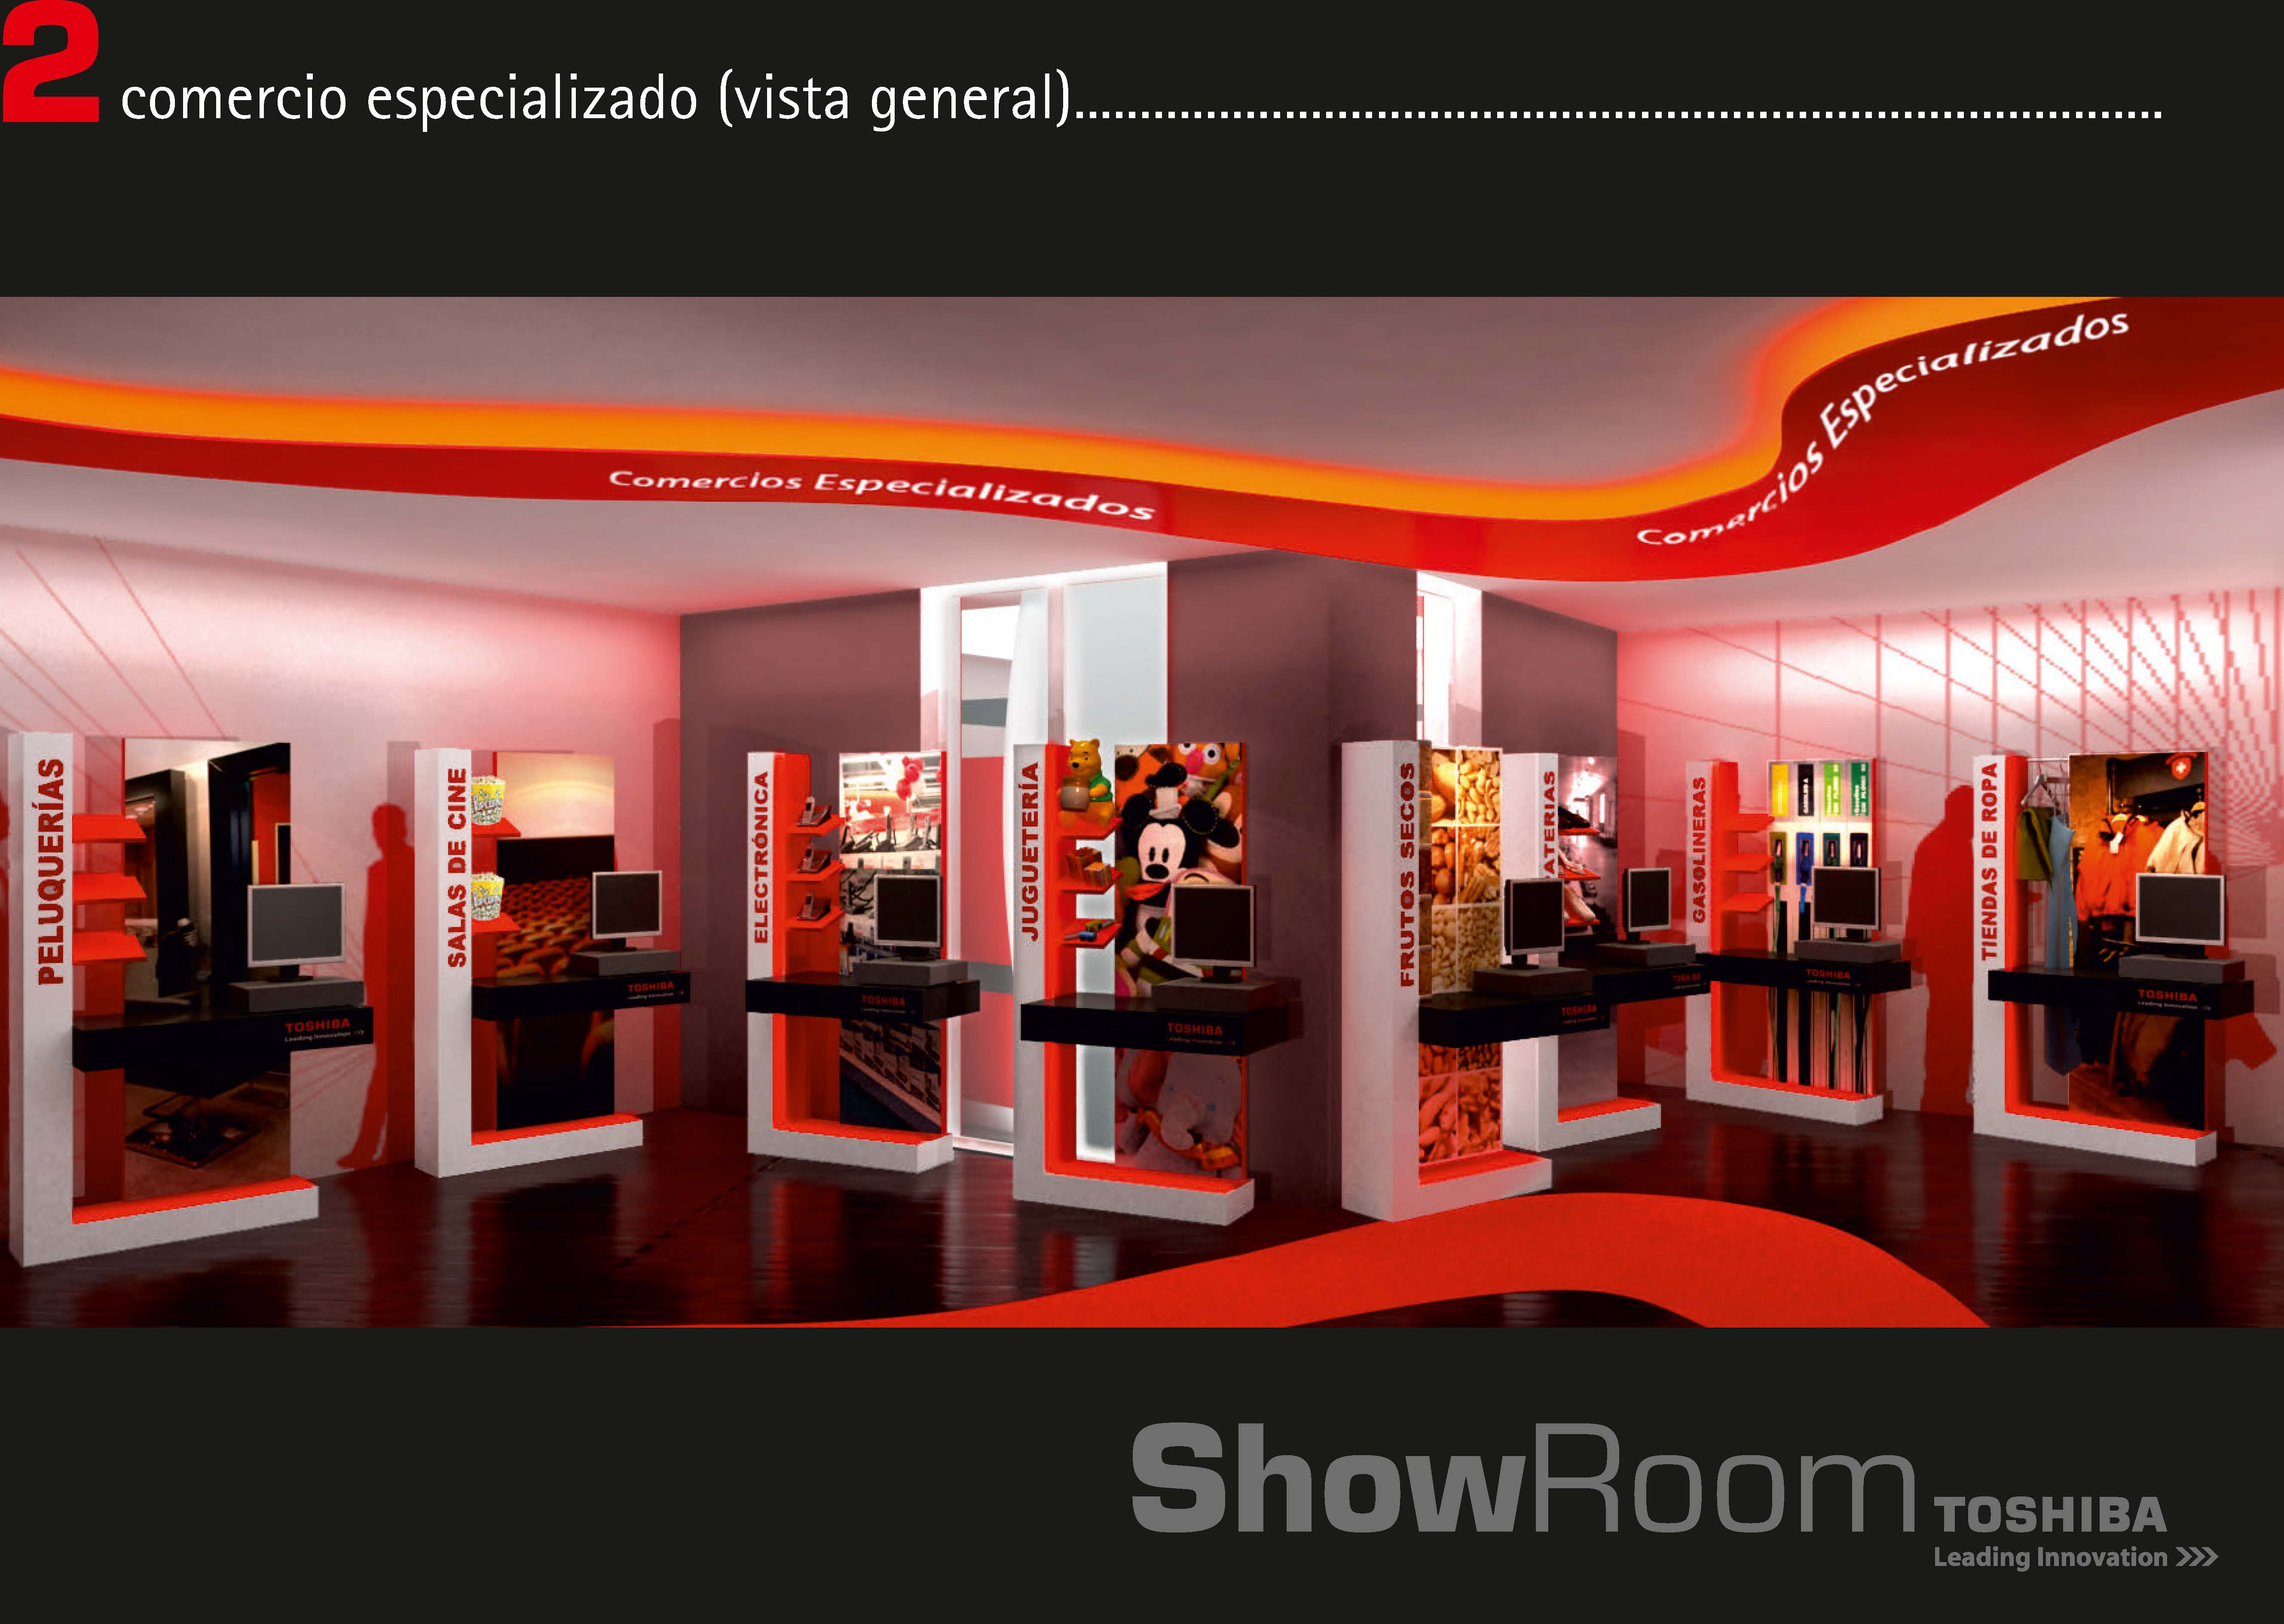 Expo TOSHIBA ShowRoom Madrid 3D (3).jpg